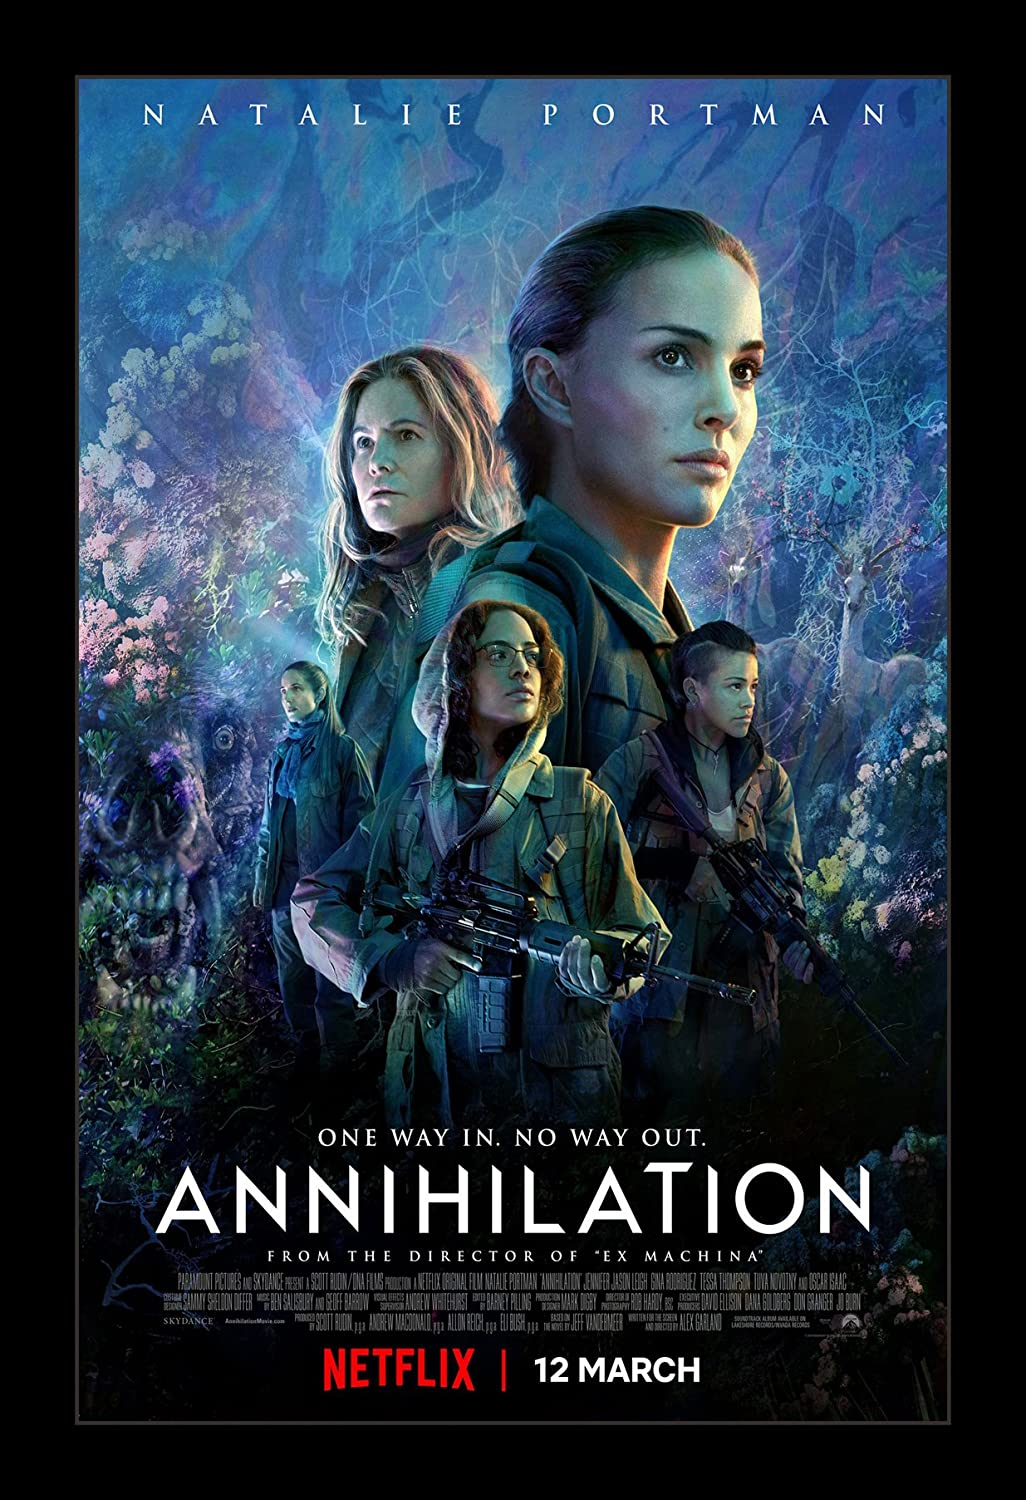 Annihilation is a more recent film on this list, created in 2018. The film is metaphorically and environmentally disturbing. The cast included Natalie Portman and Gina Rodriguez and directed by AlexGarland of Ex Machina.